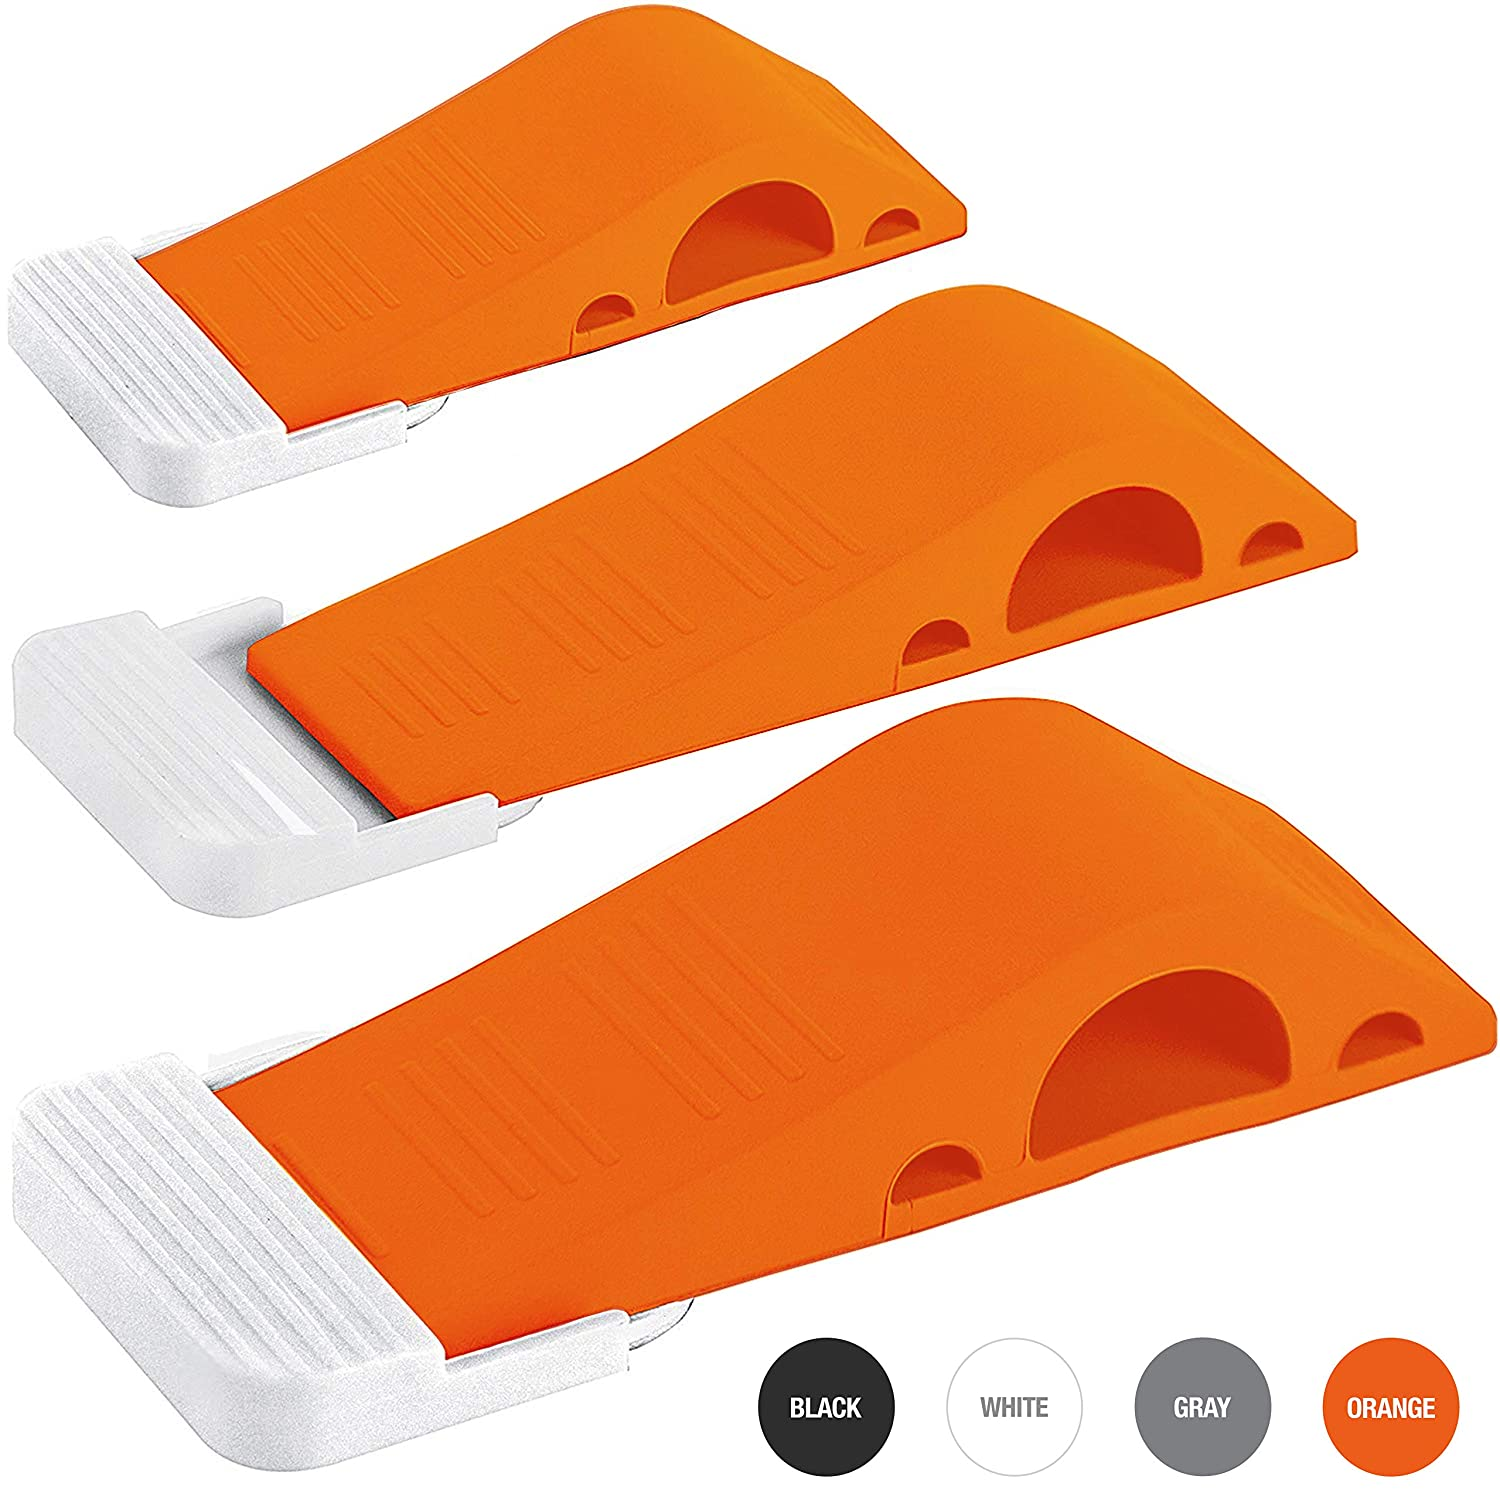 Wundermax Door Stopper Rubber Door Stop Wedge Security Door Stops with Door Holder Rubber Door Stoppers Works On All Floor Types and Carpet Heavy Duty Door Jam (3 Pack Orange)